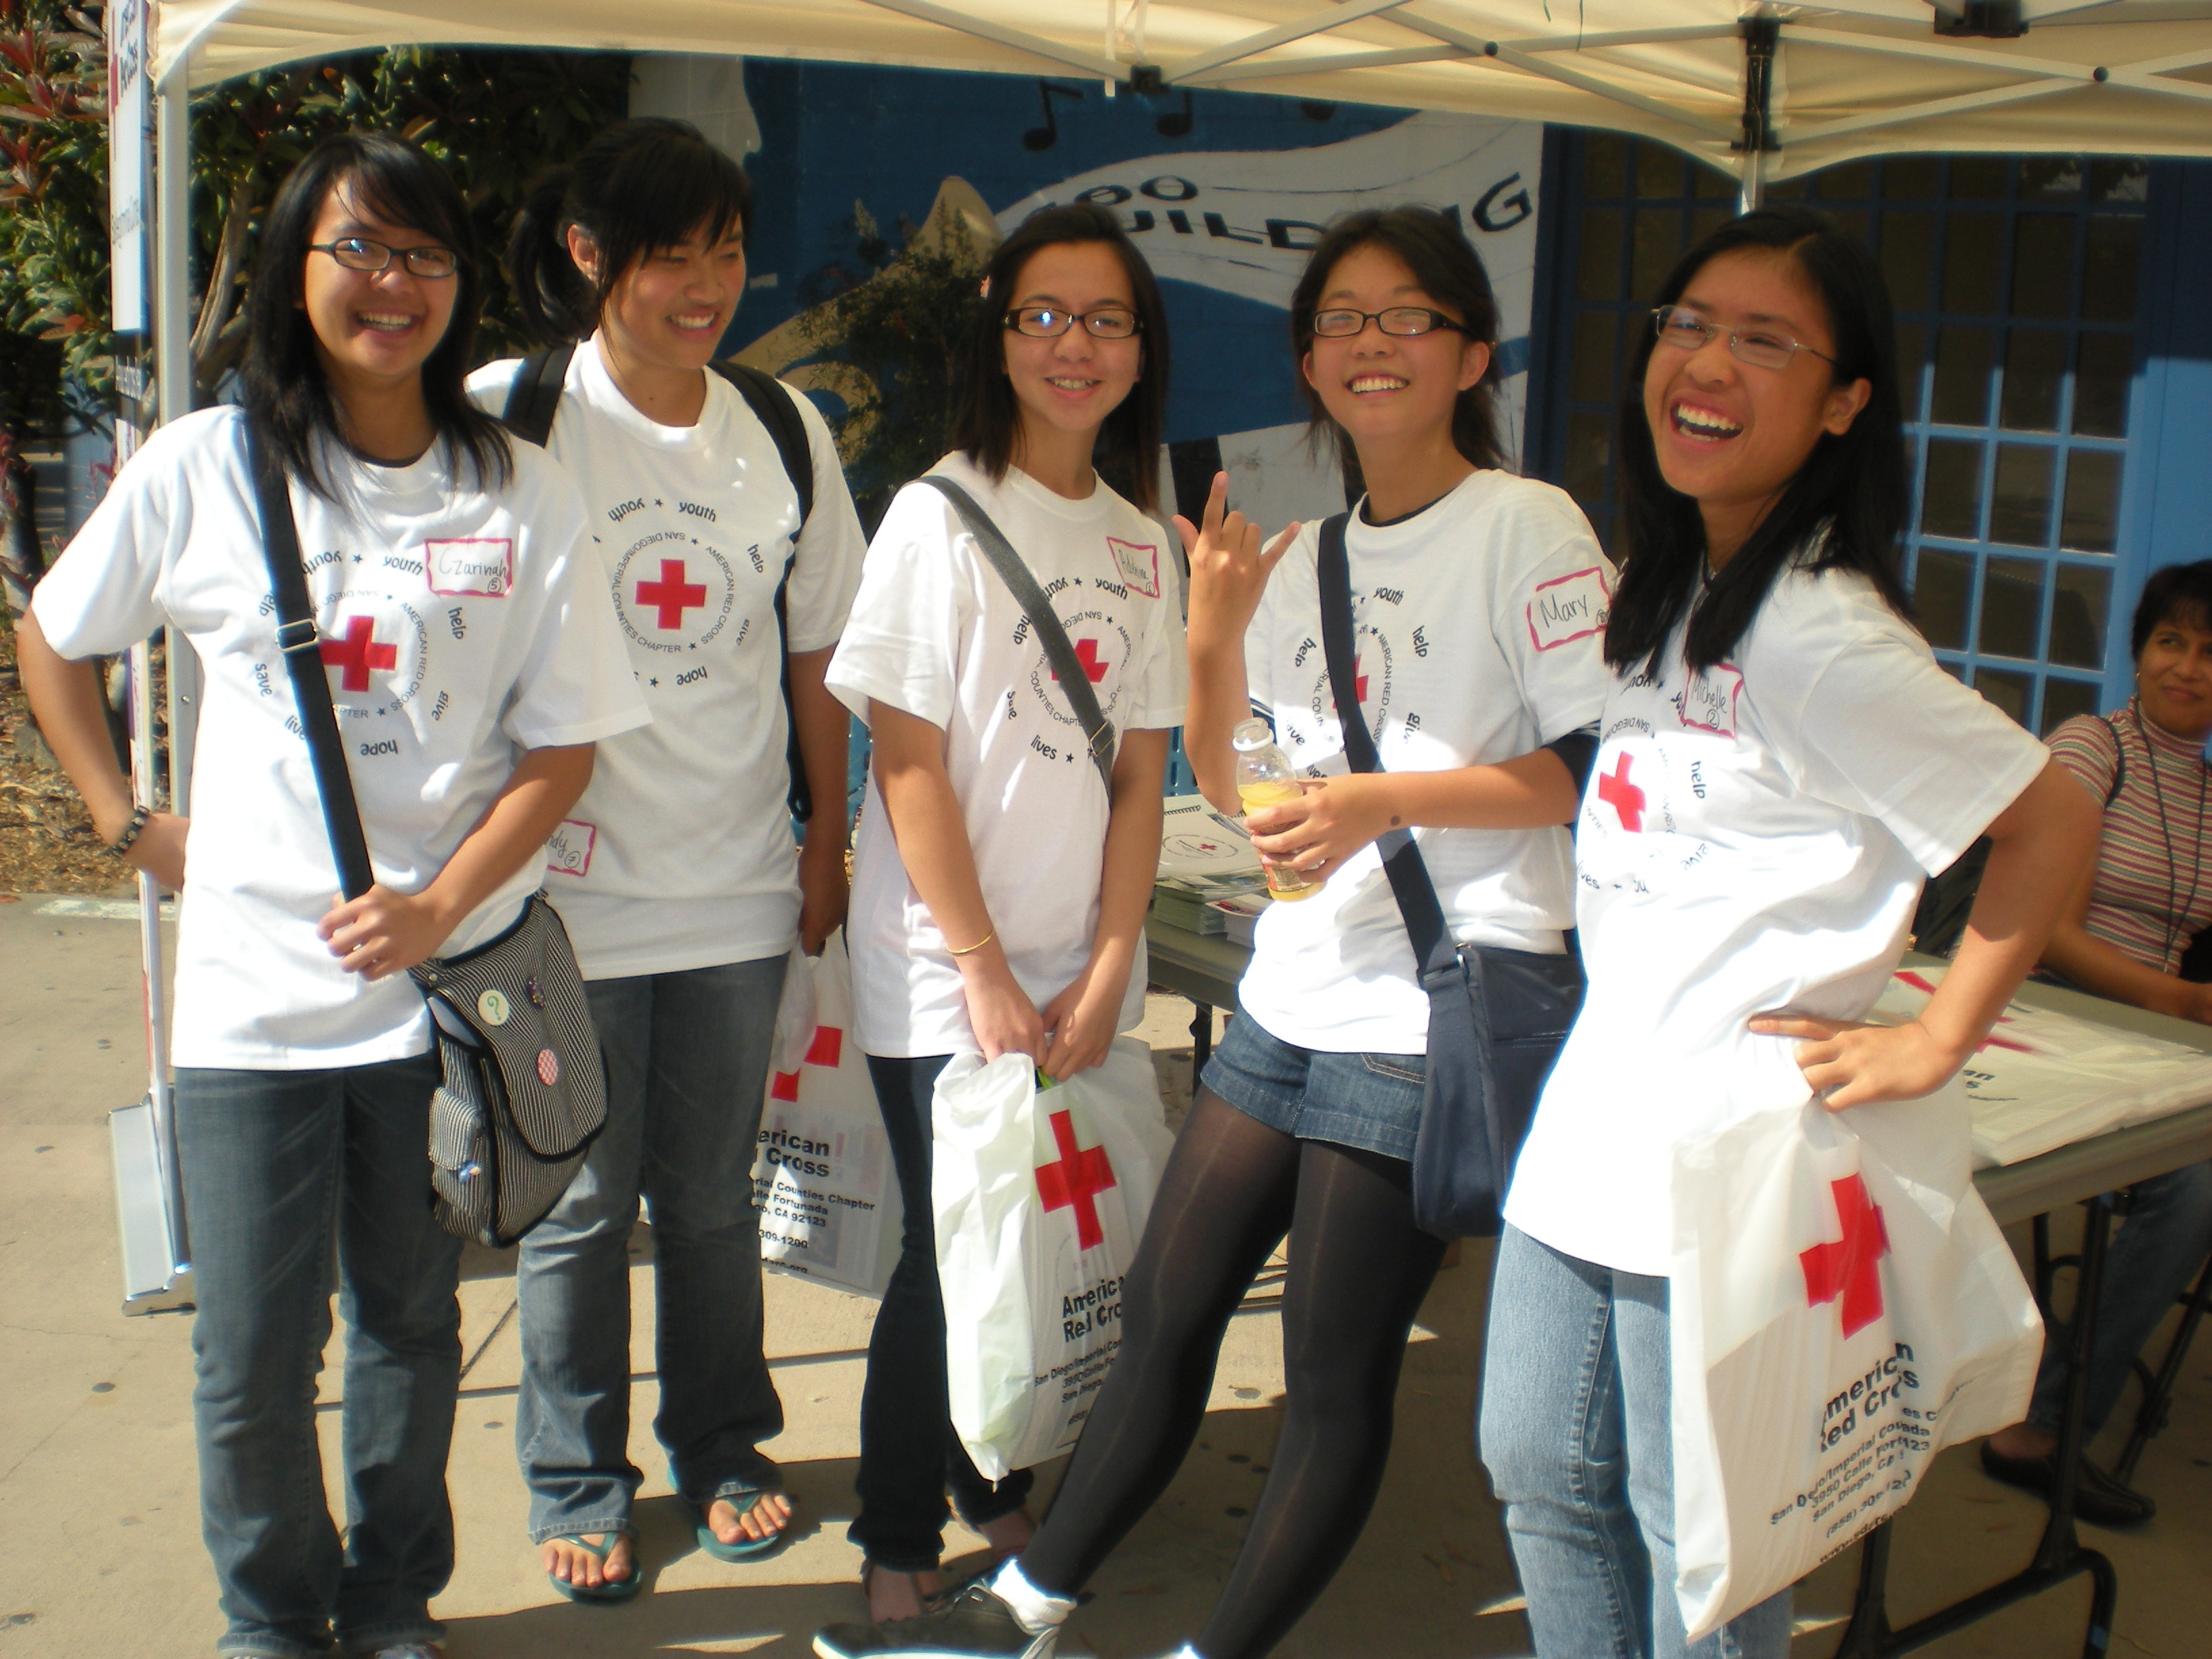 Youth Volunteers at the Youth Disaster Camp